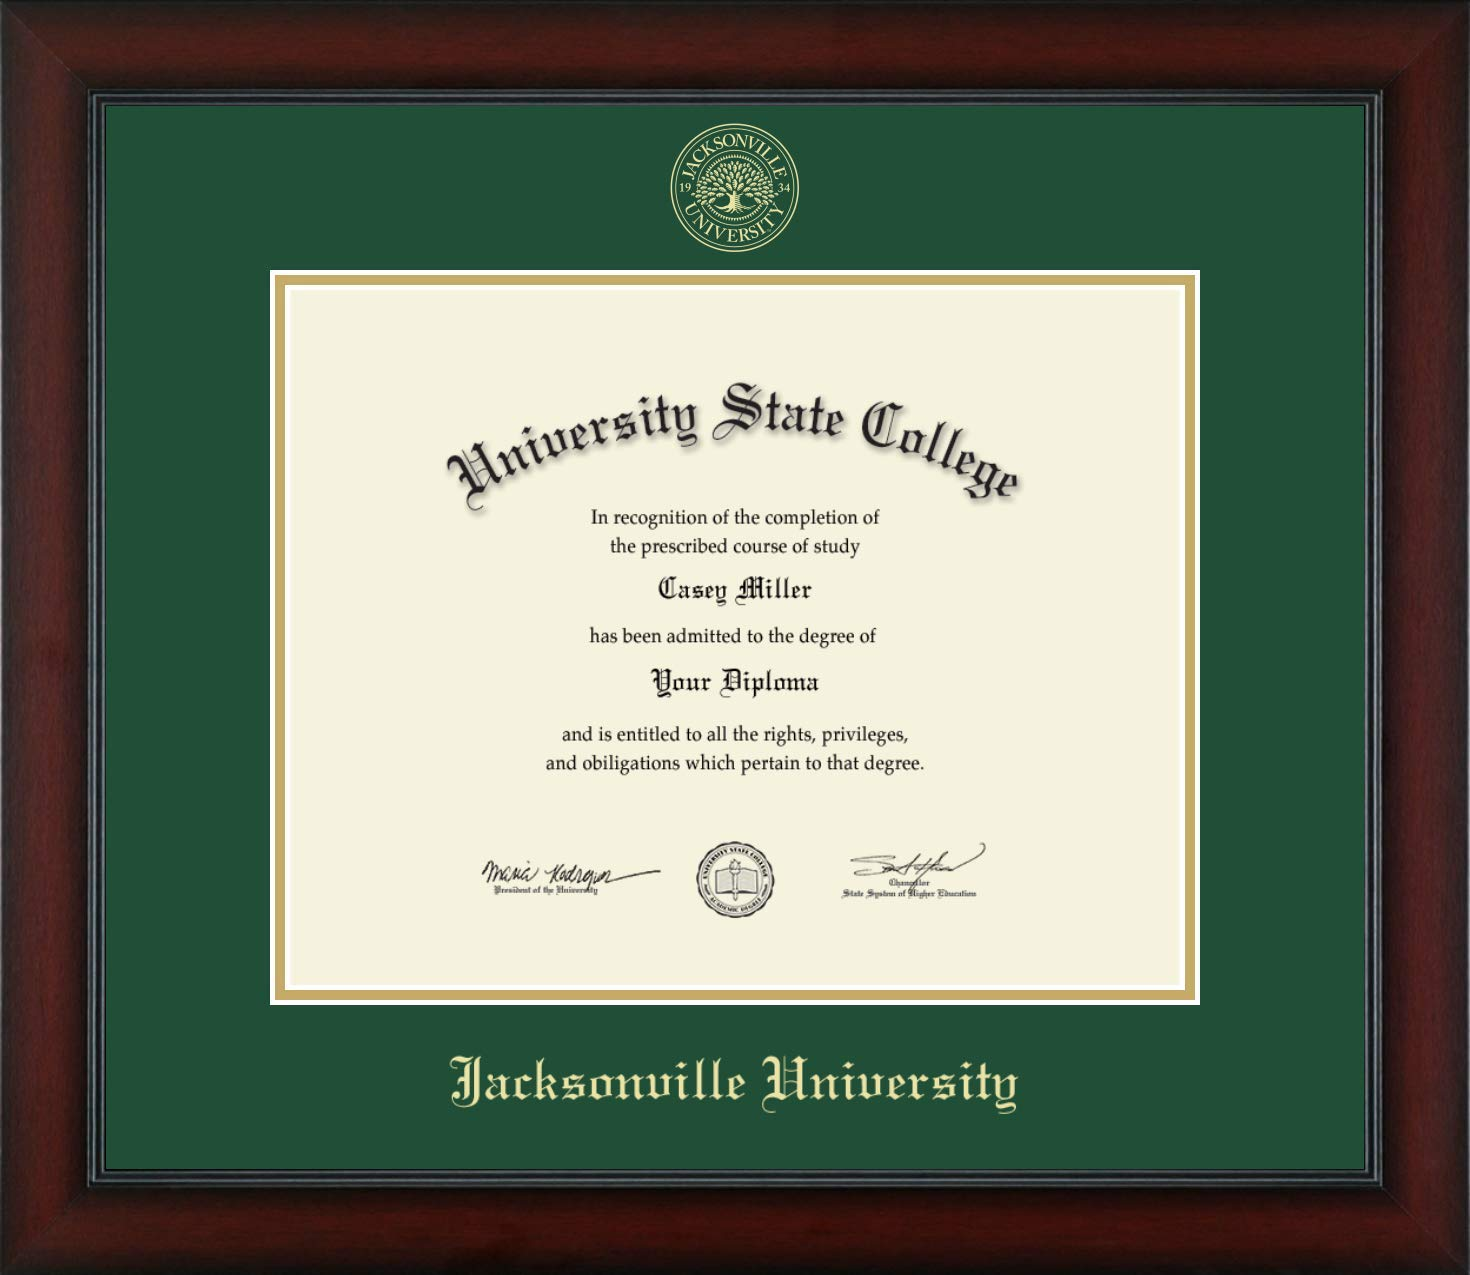 Jacksonville University - Officially Licensed - Gold Embossed Diploma Frame - Diploma Size 14'' x 11''